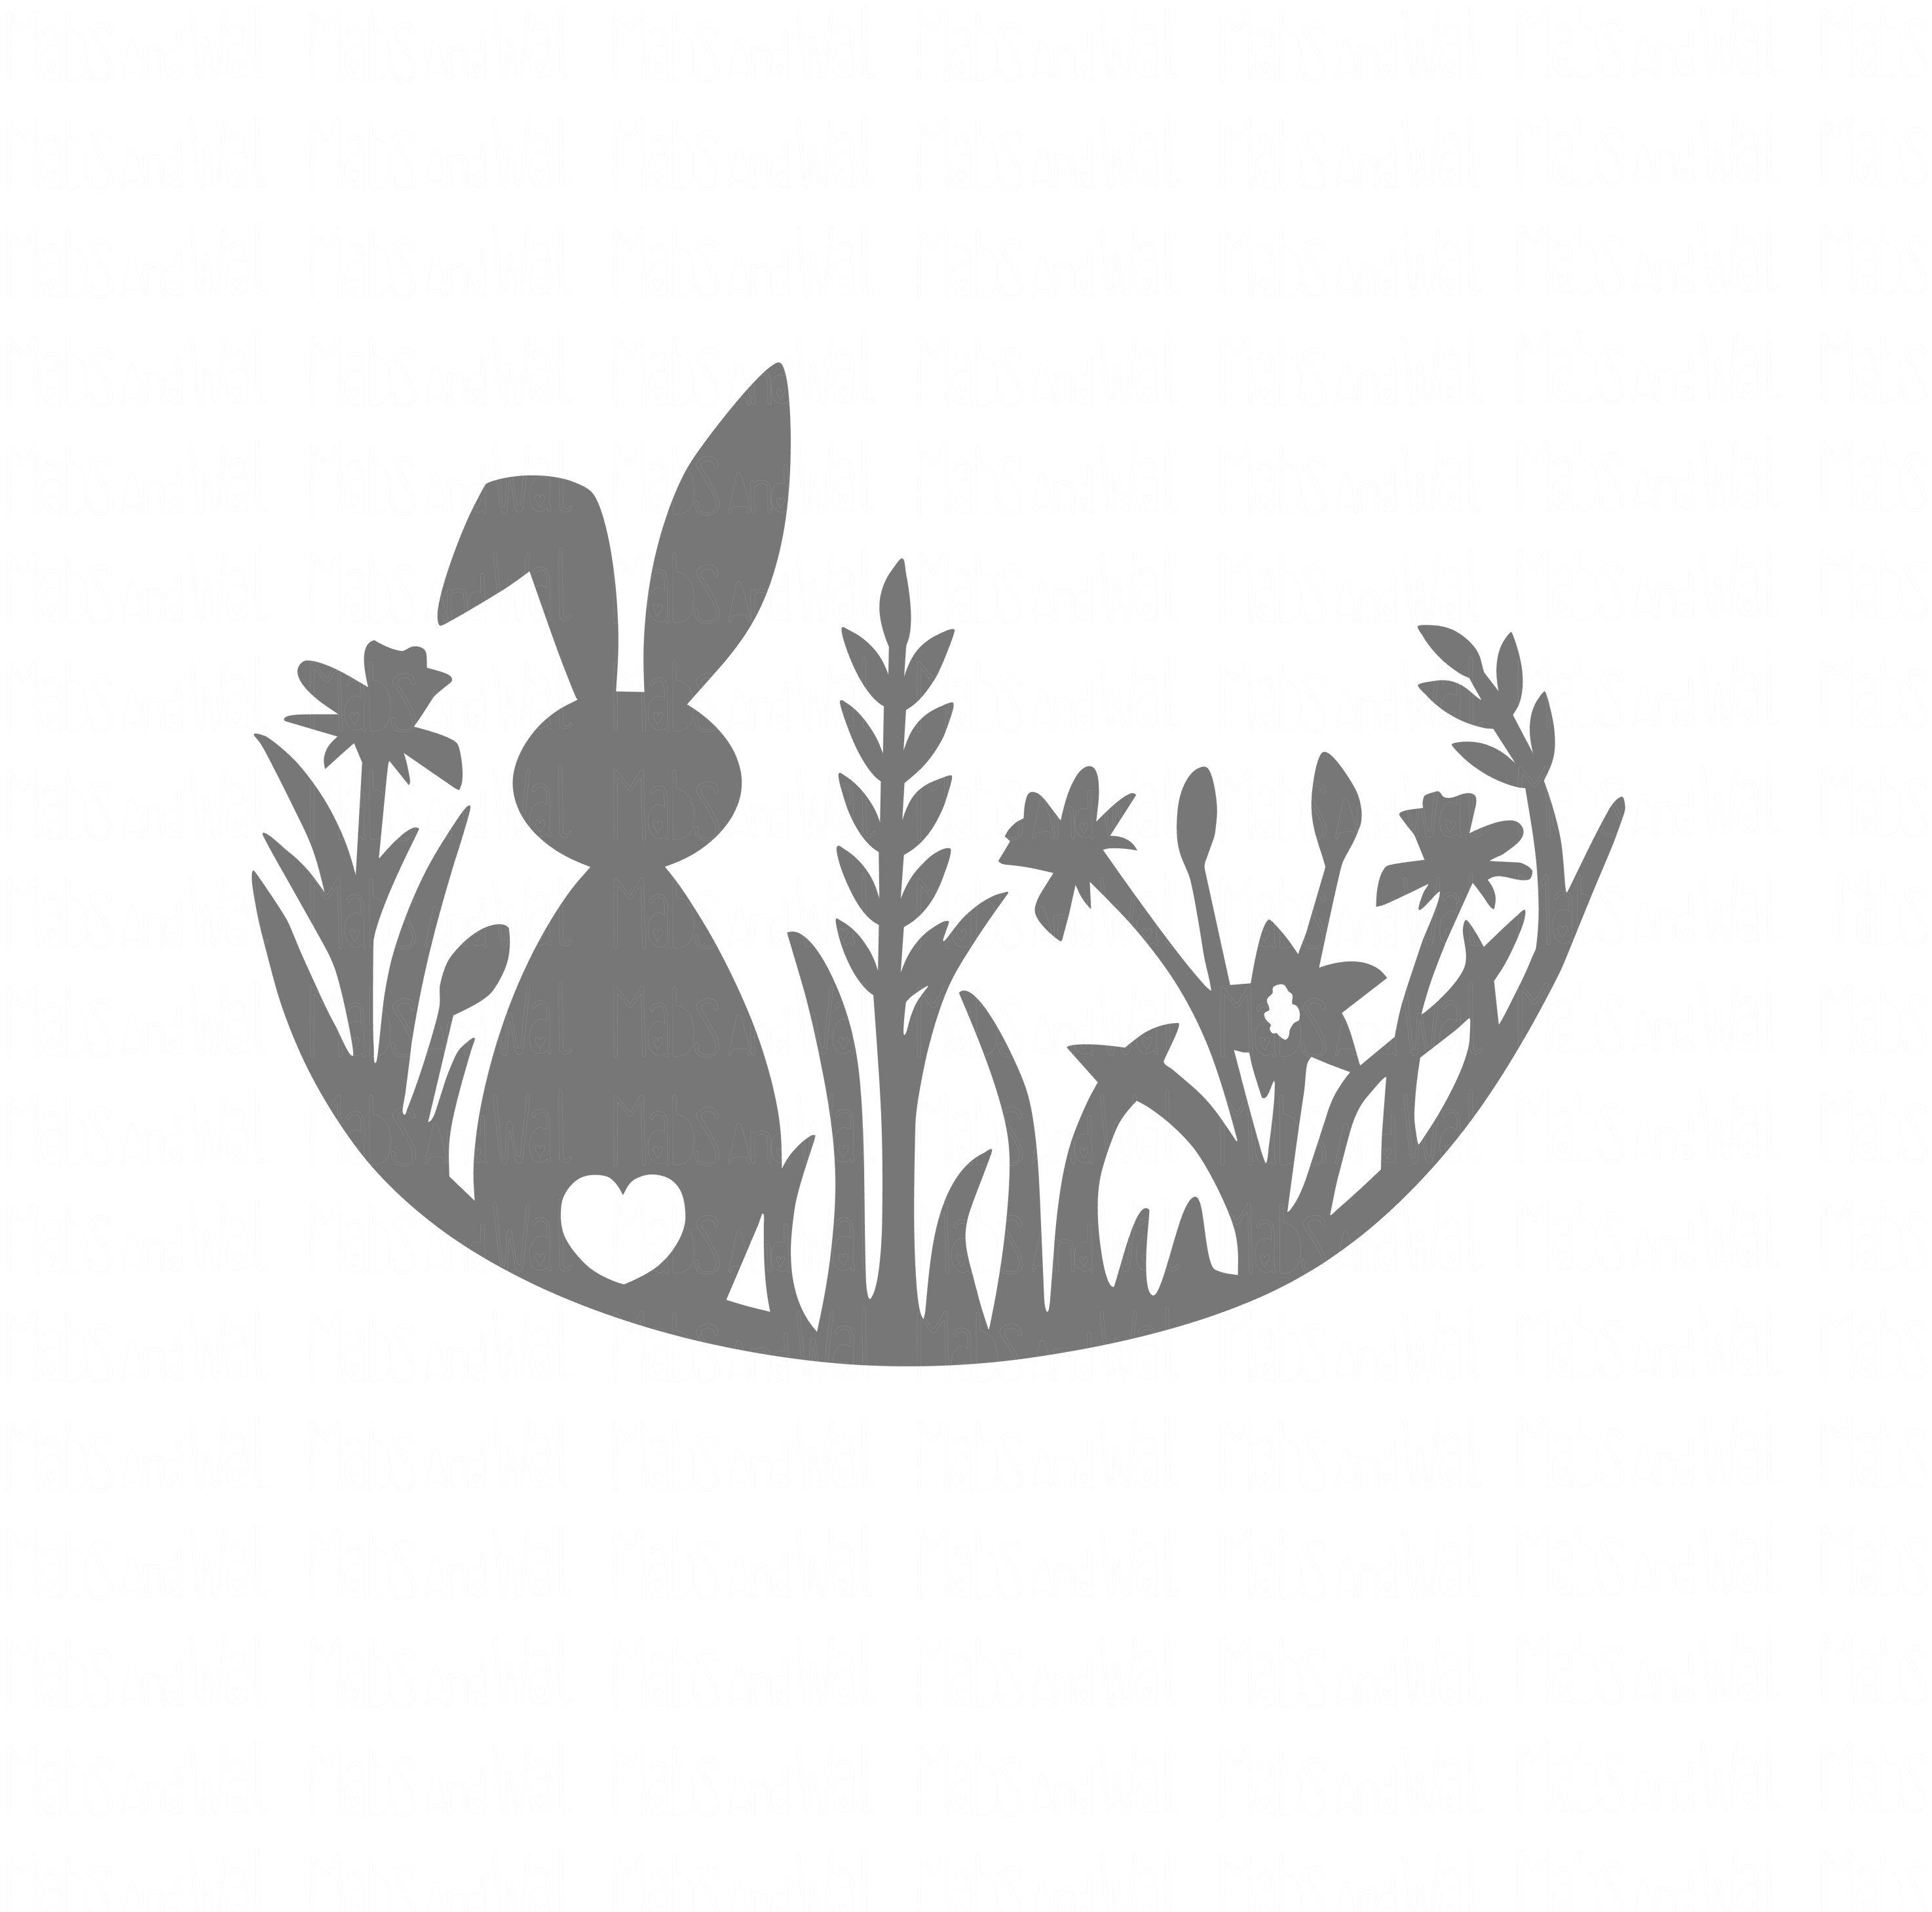 Photo of Rabbit in meadow SVG PNG DXF digital cutting file/rabbit svg/easter bunny svg/meadow rabbit/easter egg/easter rabbit/papercutting template